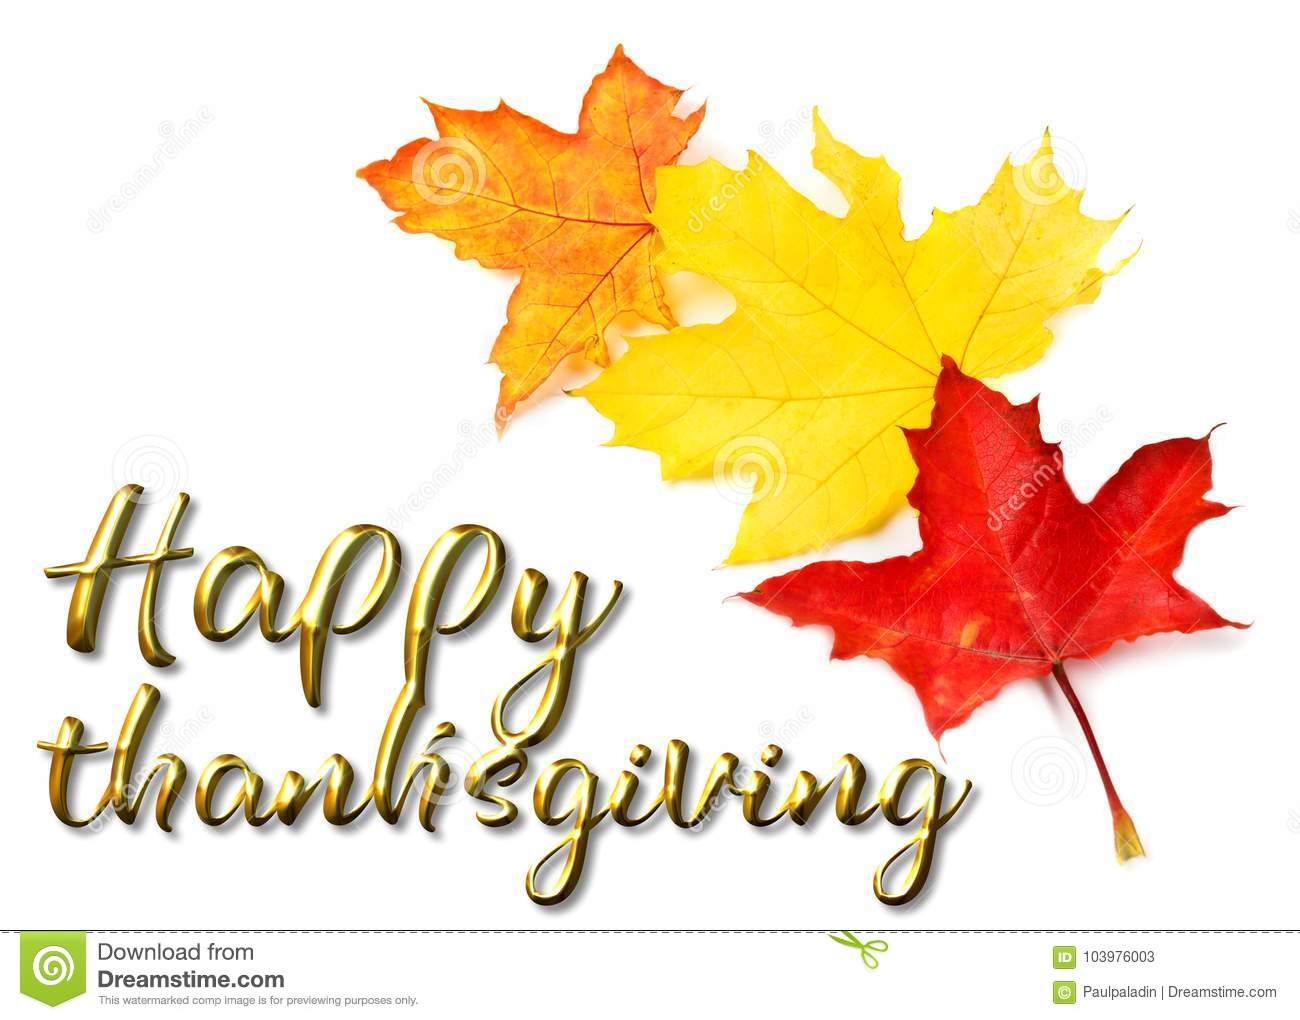 Happy thanksgiving greeting card message stock image image of text happy thanksgiving greeting card message m4hsunfo